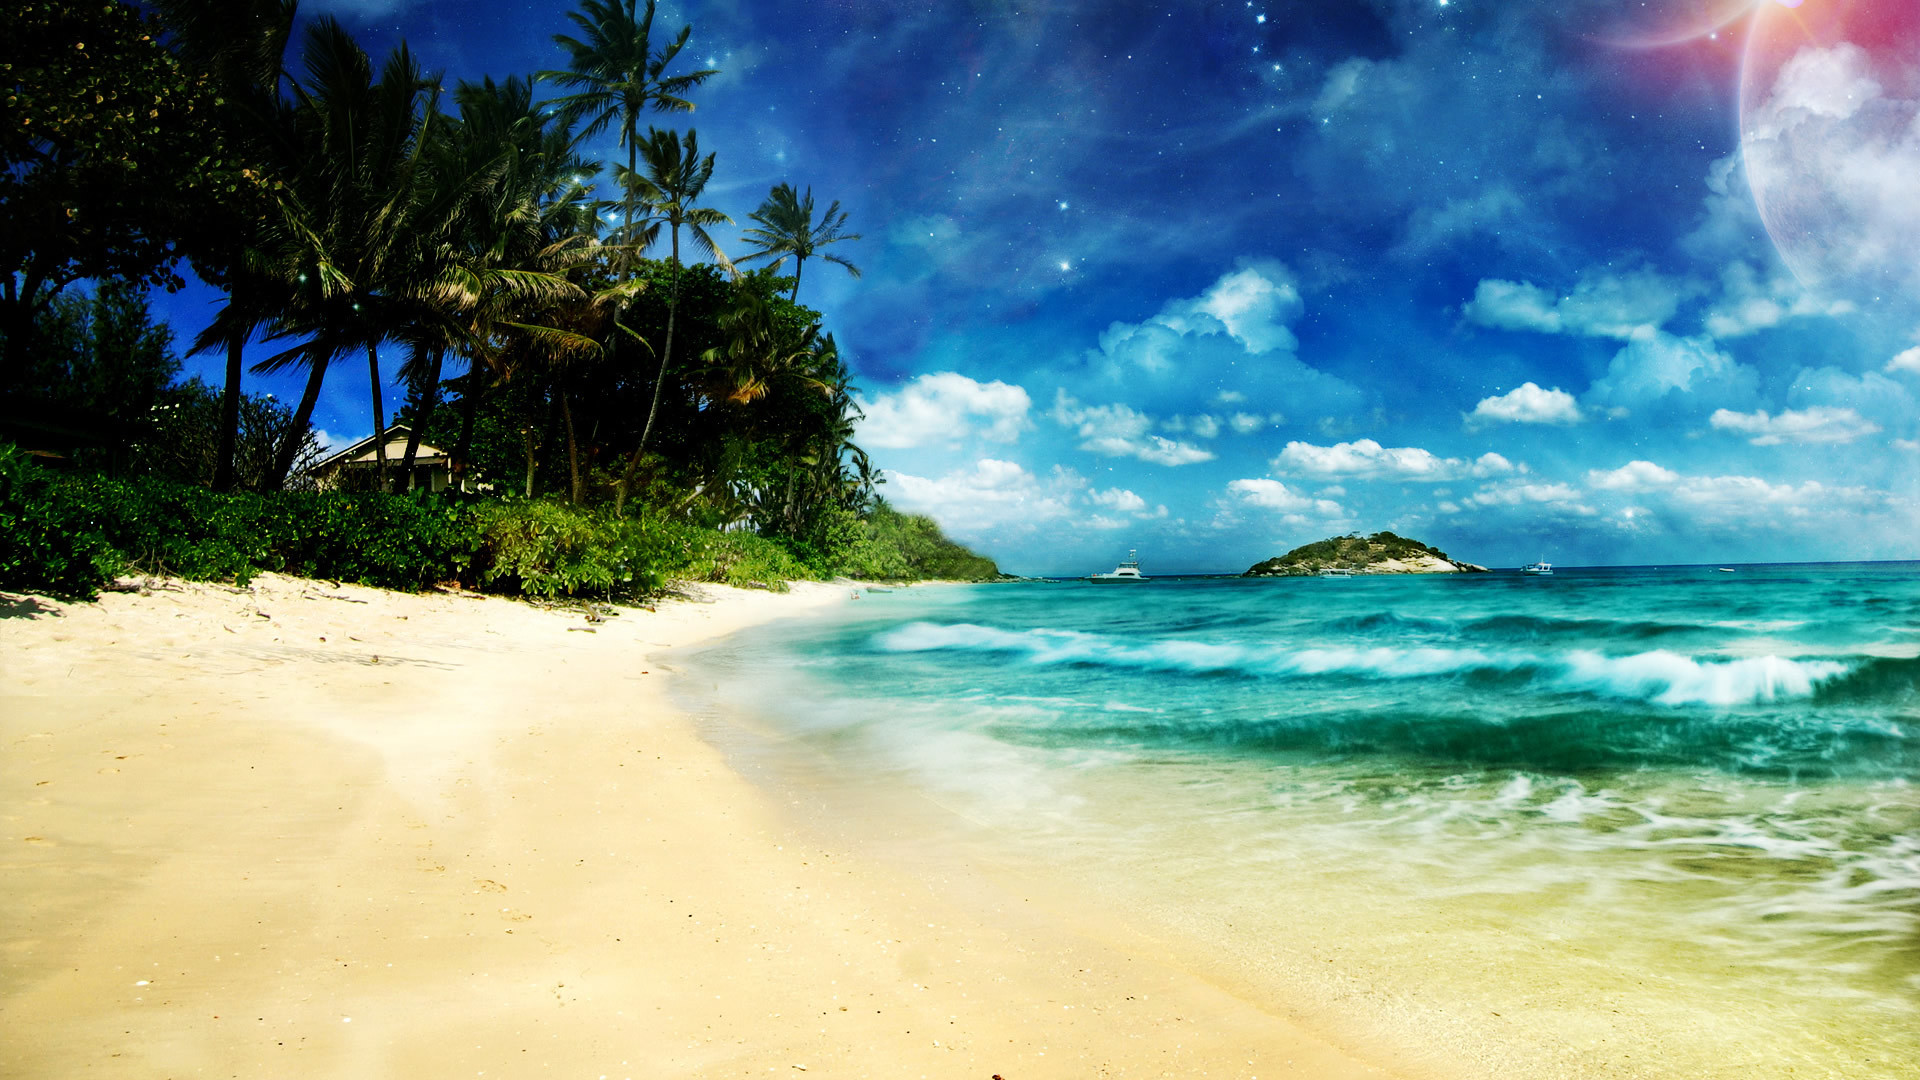 Summer Beach Wallpaper For Desktop 55 Images